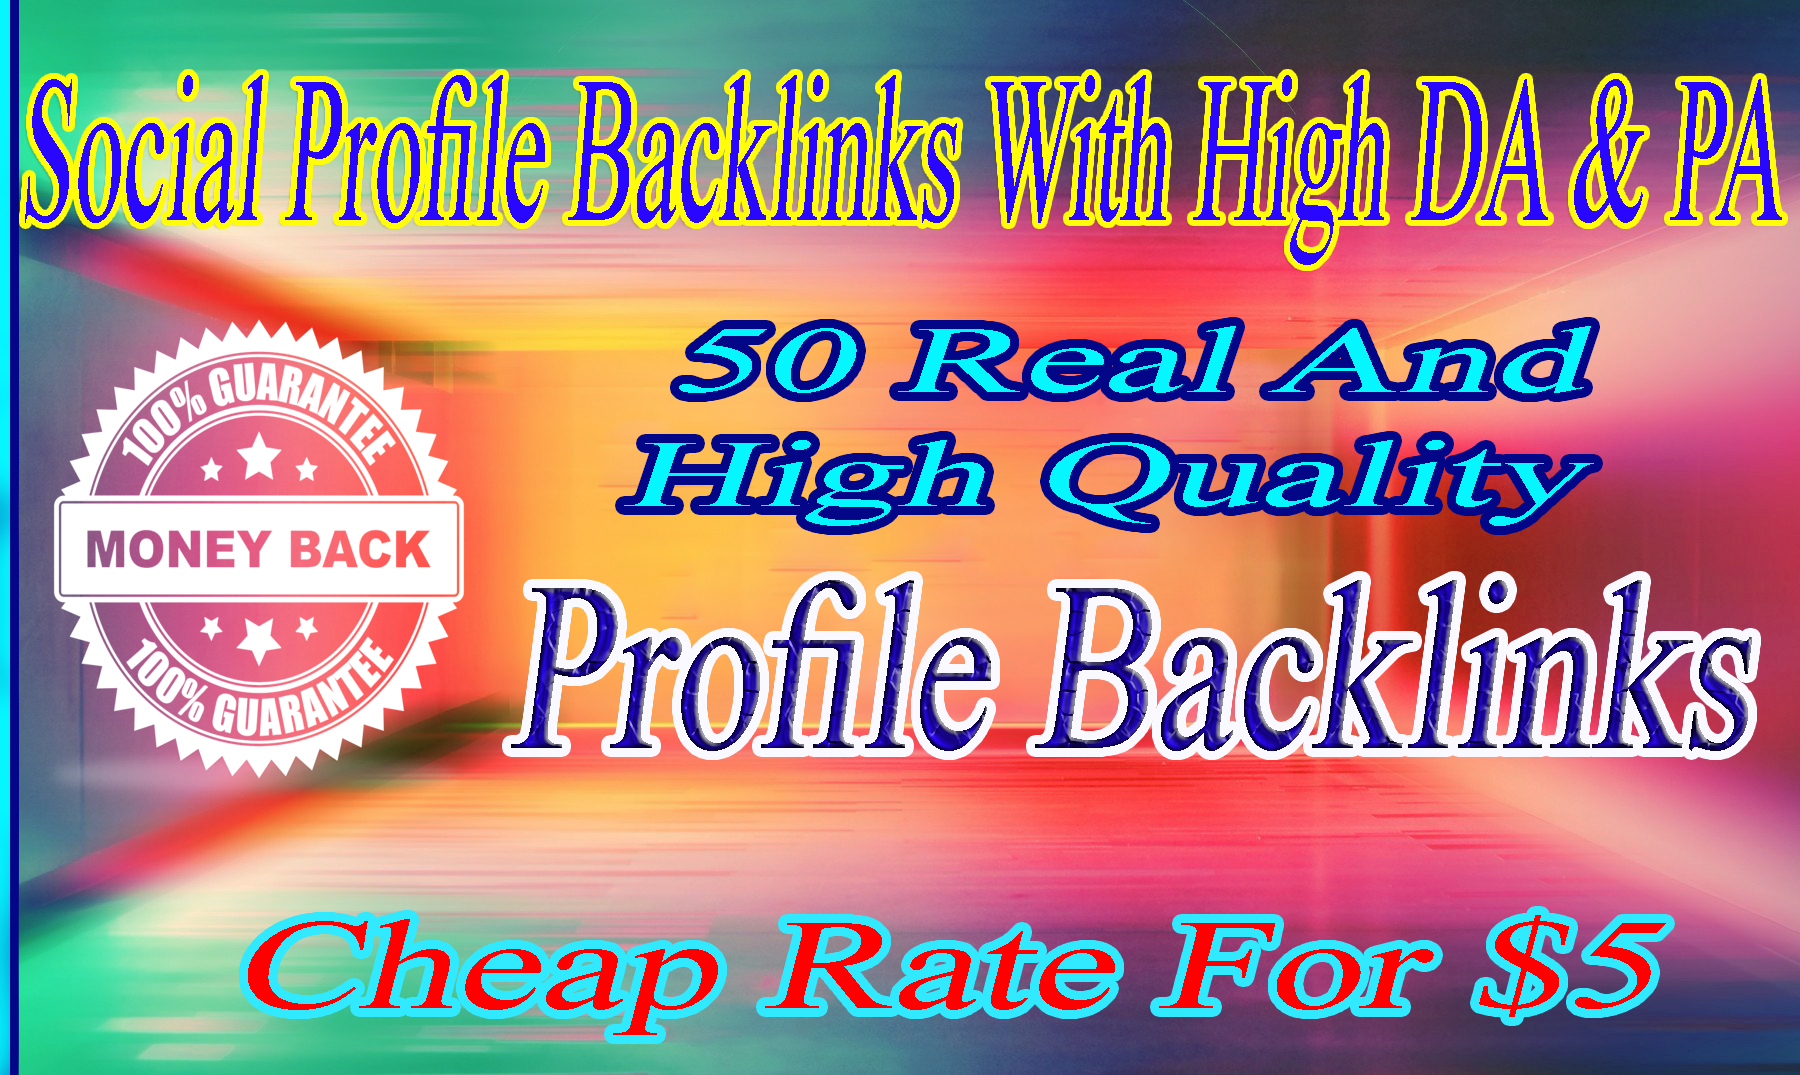 add 50 social profile backlinks with high DA & PA at a cheap rate for